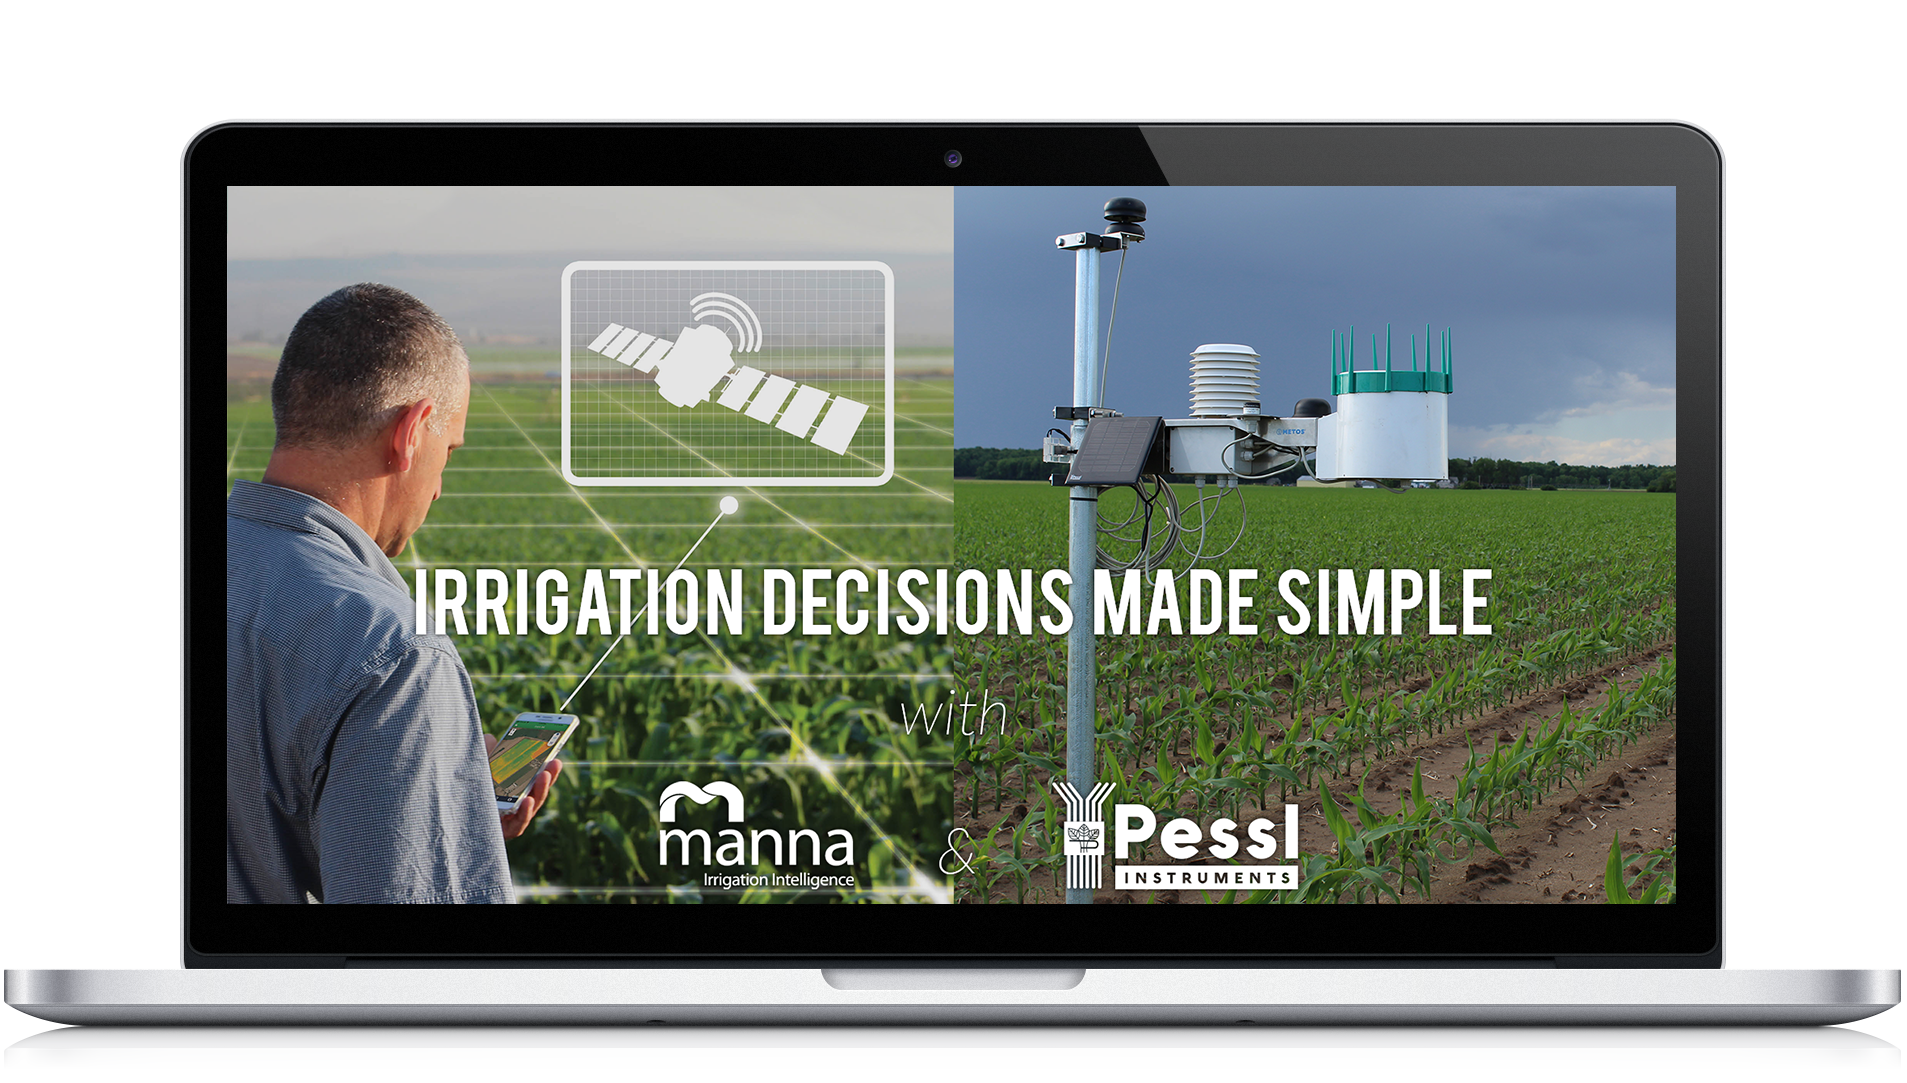 Manna Irrigation and Pessl Instruments partnership for better irrigation management